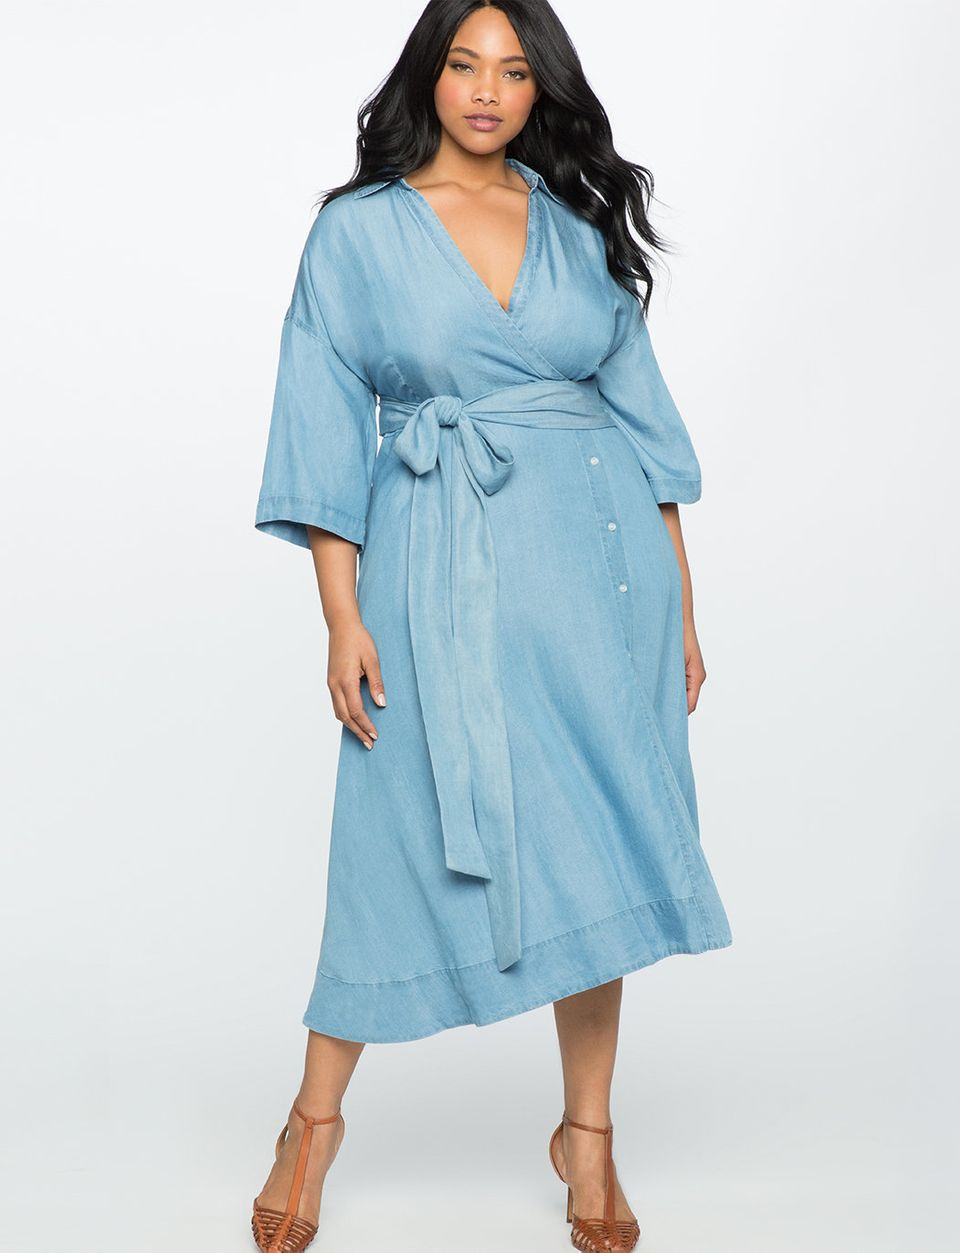 ff76ce4acc5 28 Button Down Dresses And Skirts For Plus Size That Won t Gape ...